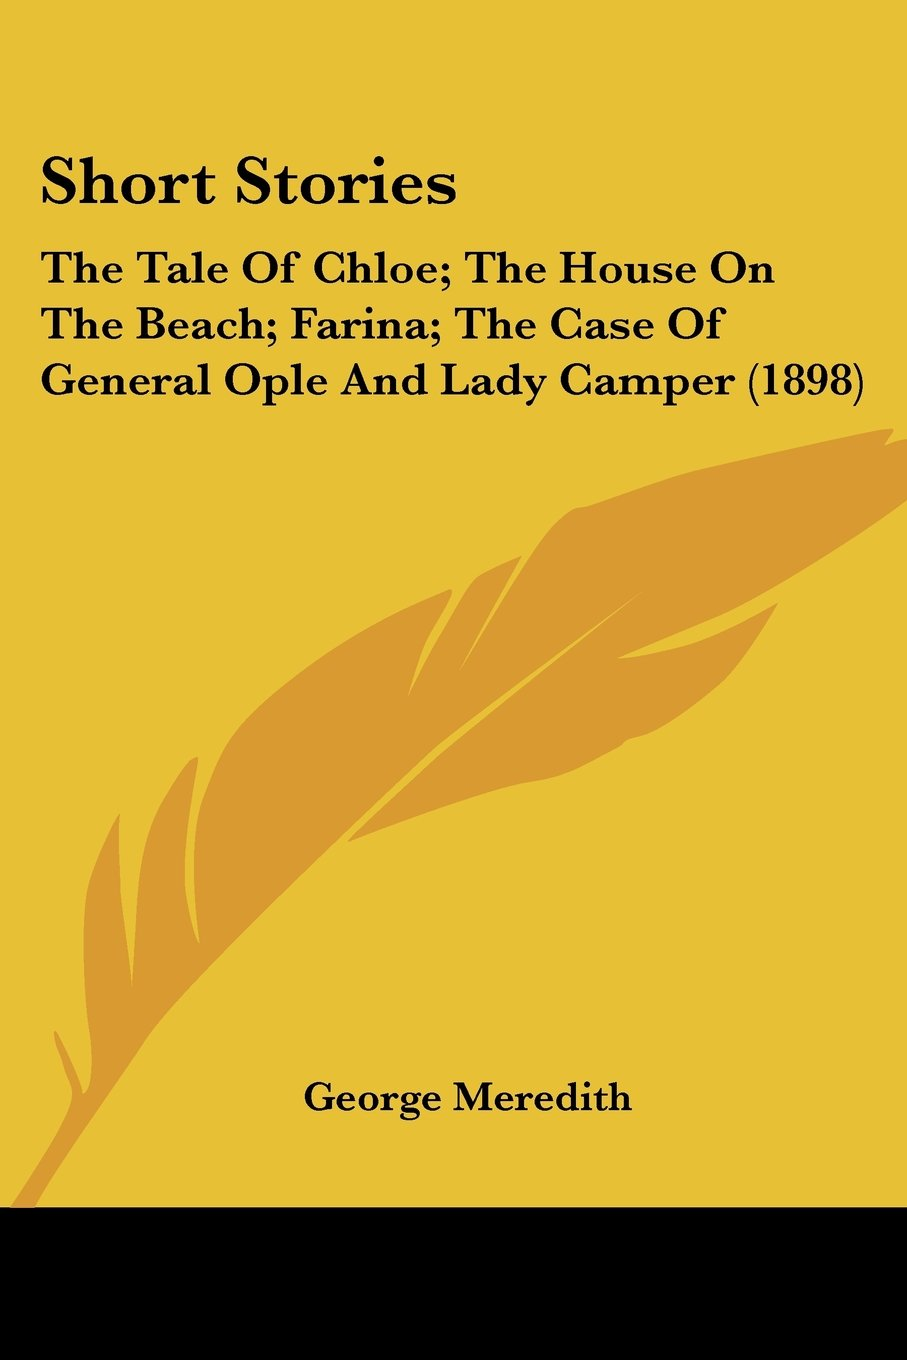 Read Online Short Stories: The Tale Of Chloe; The House On The Beach; Farina; The Case Of General Ople And Lady Camper (1898) ebook